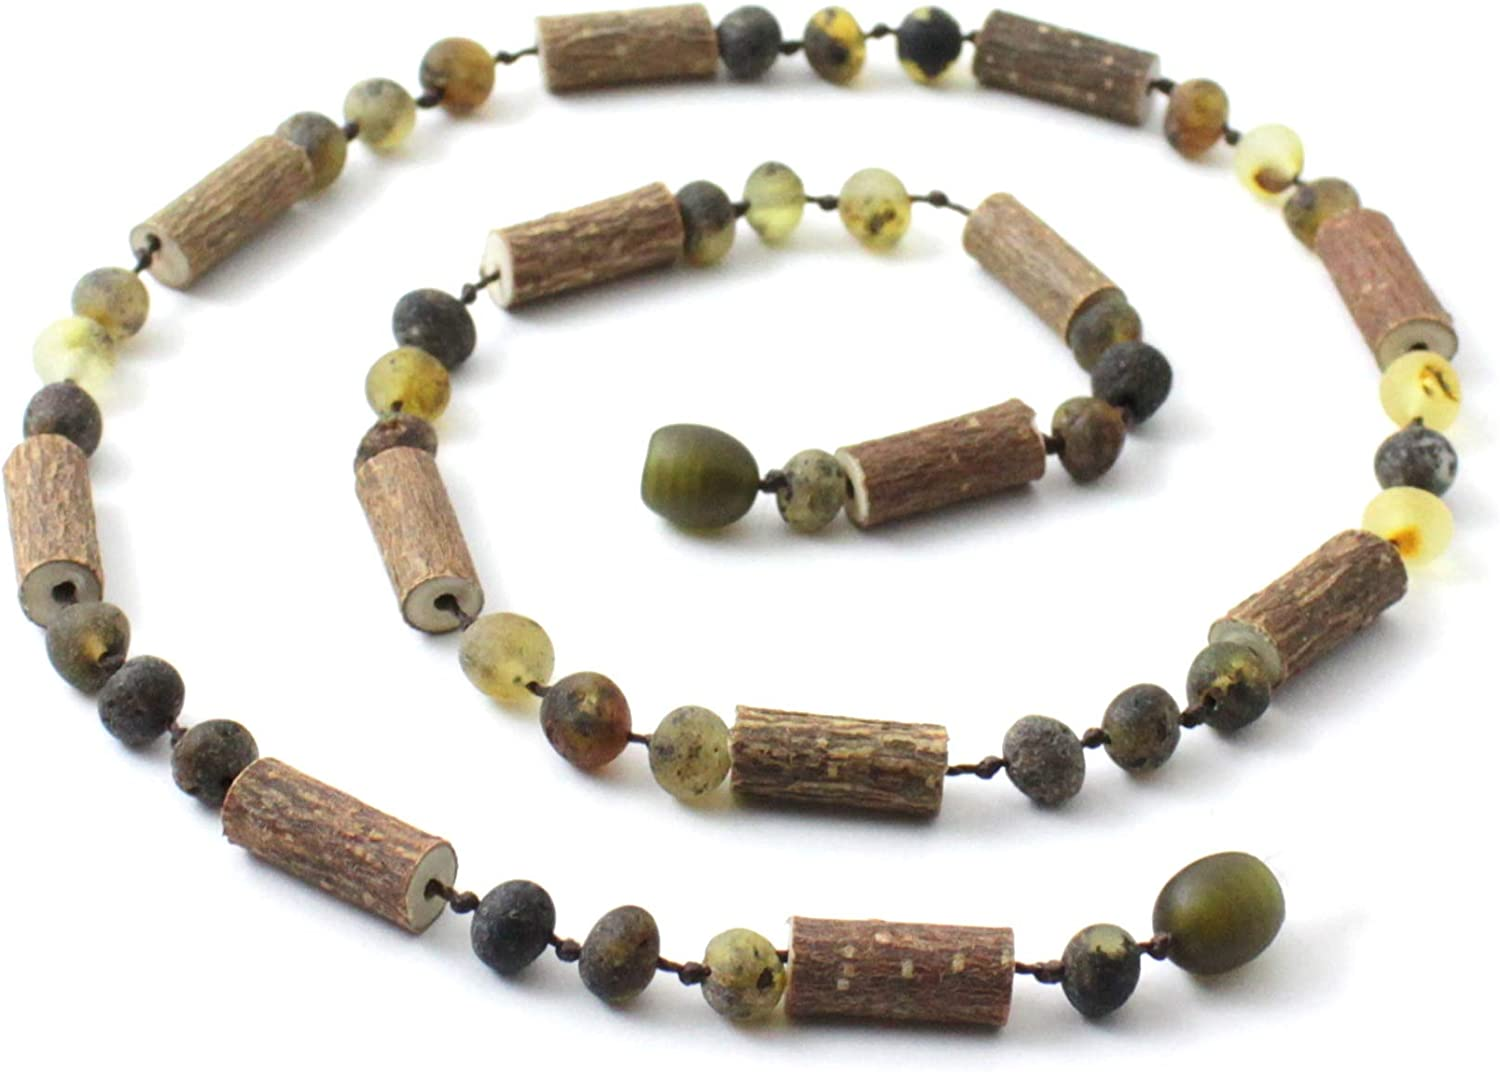 TipTopEco Max 60% OFF Unpolished Baltic Amber Ranking TOP5 and Adu Necklace for Hazelwood